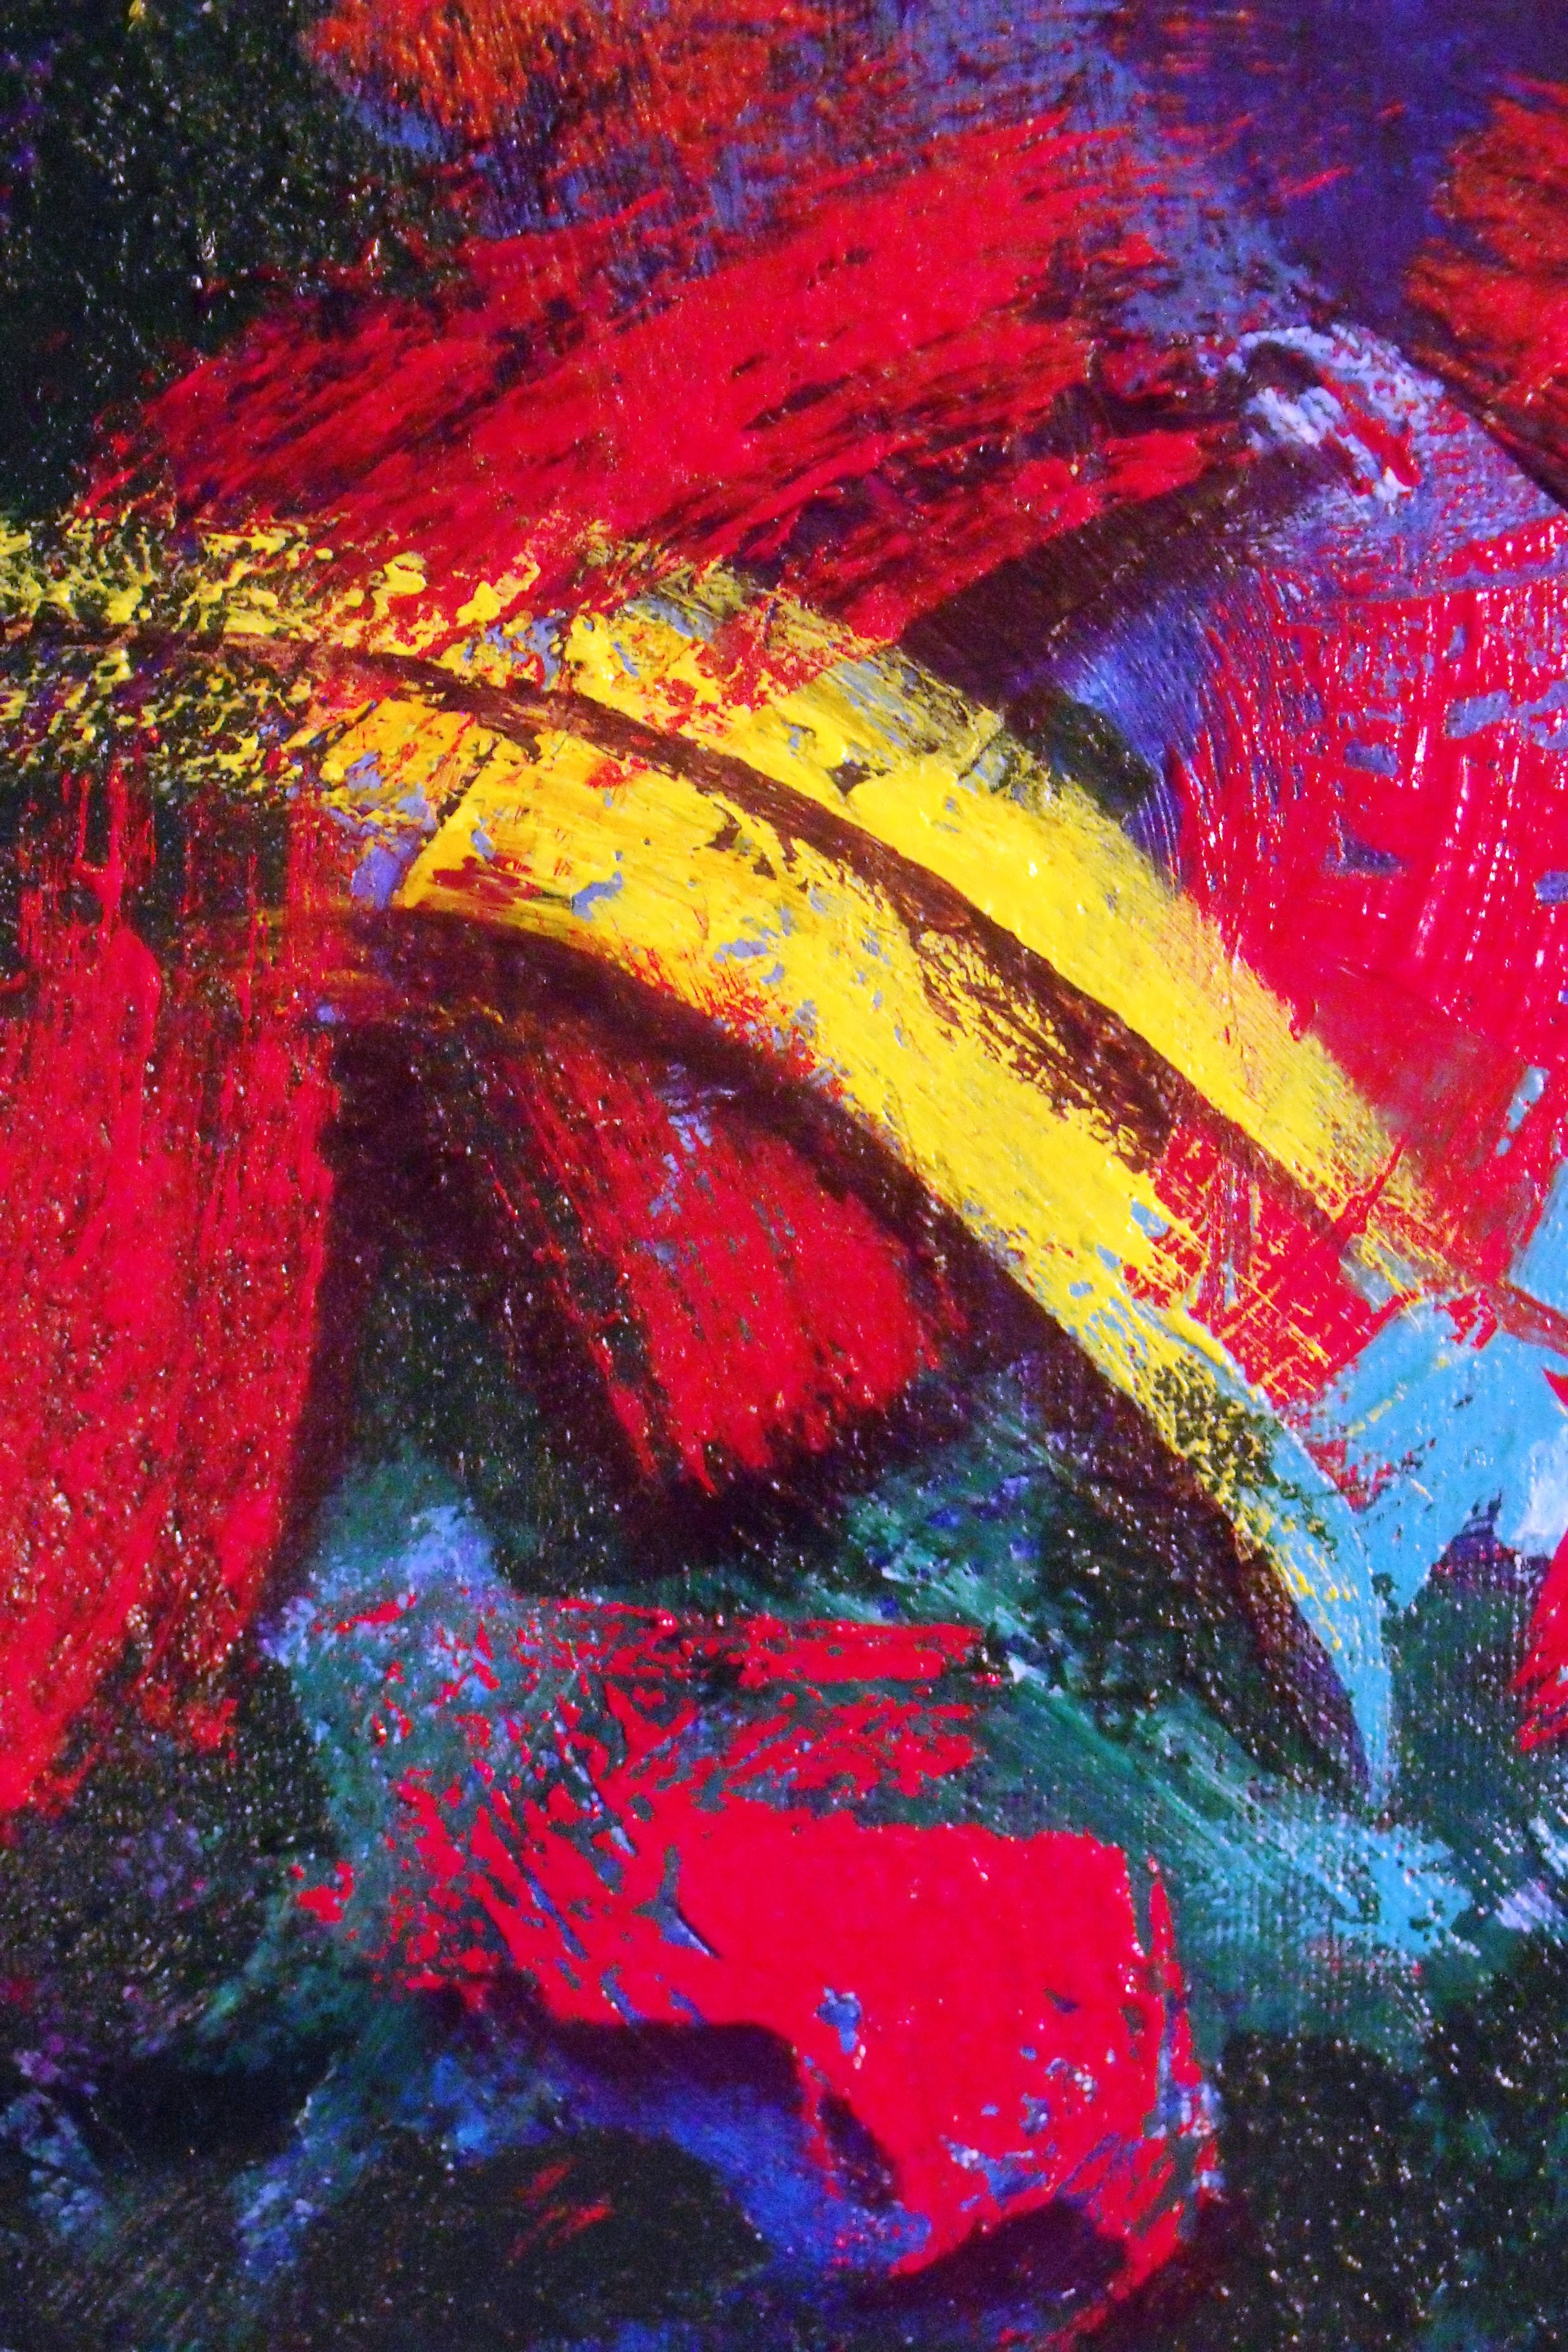 Abstract Art 1, Impressionism | Tracts4free